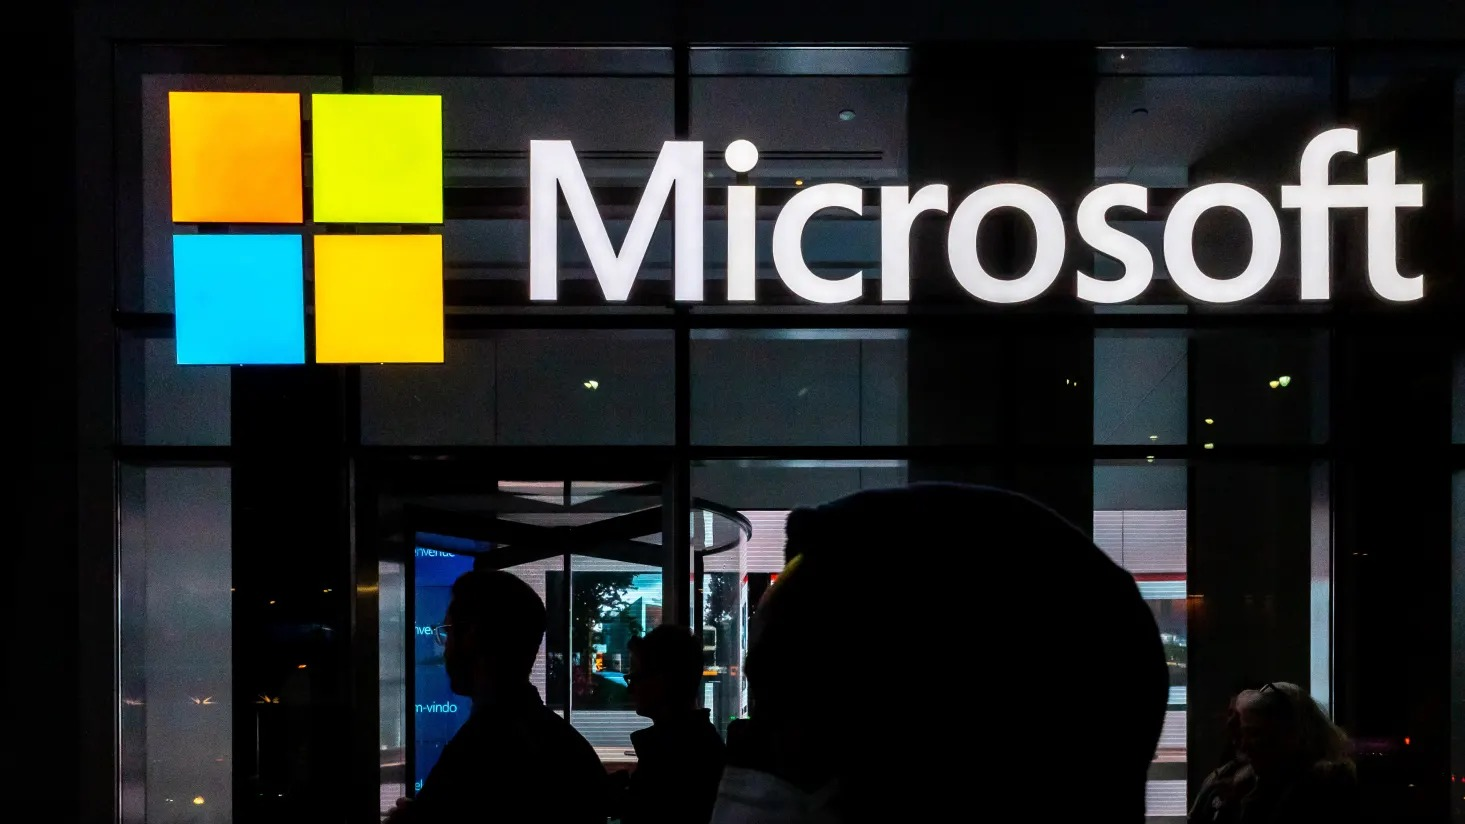 Microsoft is about to buy Nuance, the AI company behind Apple's virtual assistant Siri, for $ 16 billion